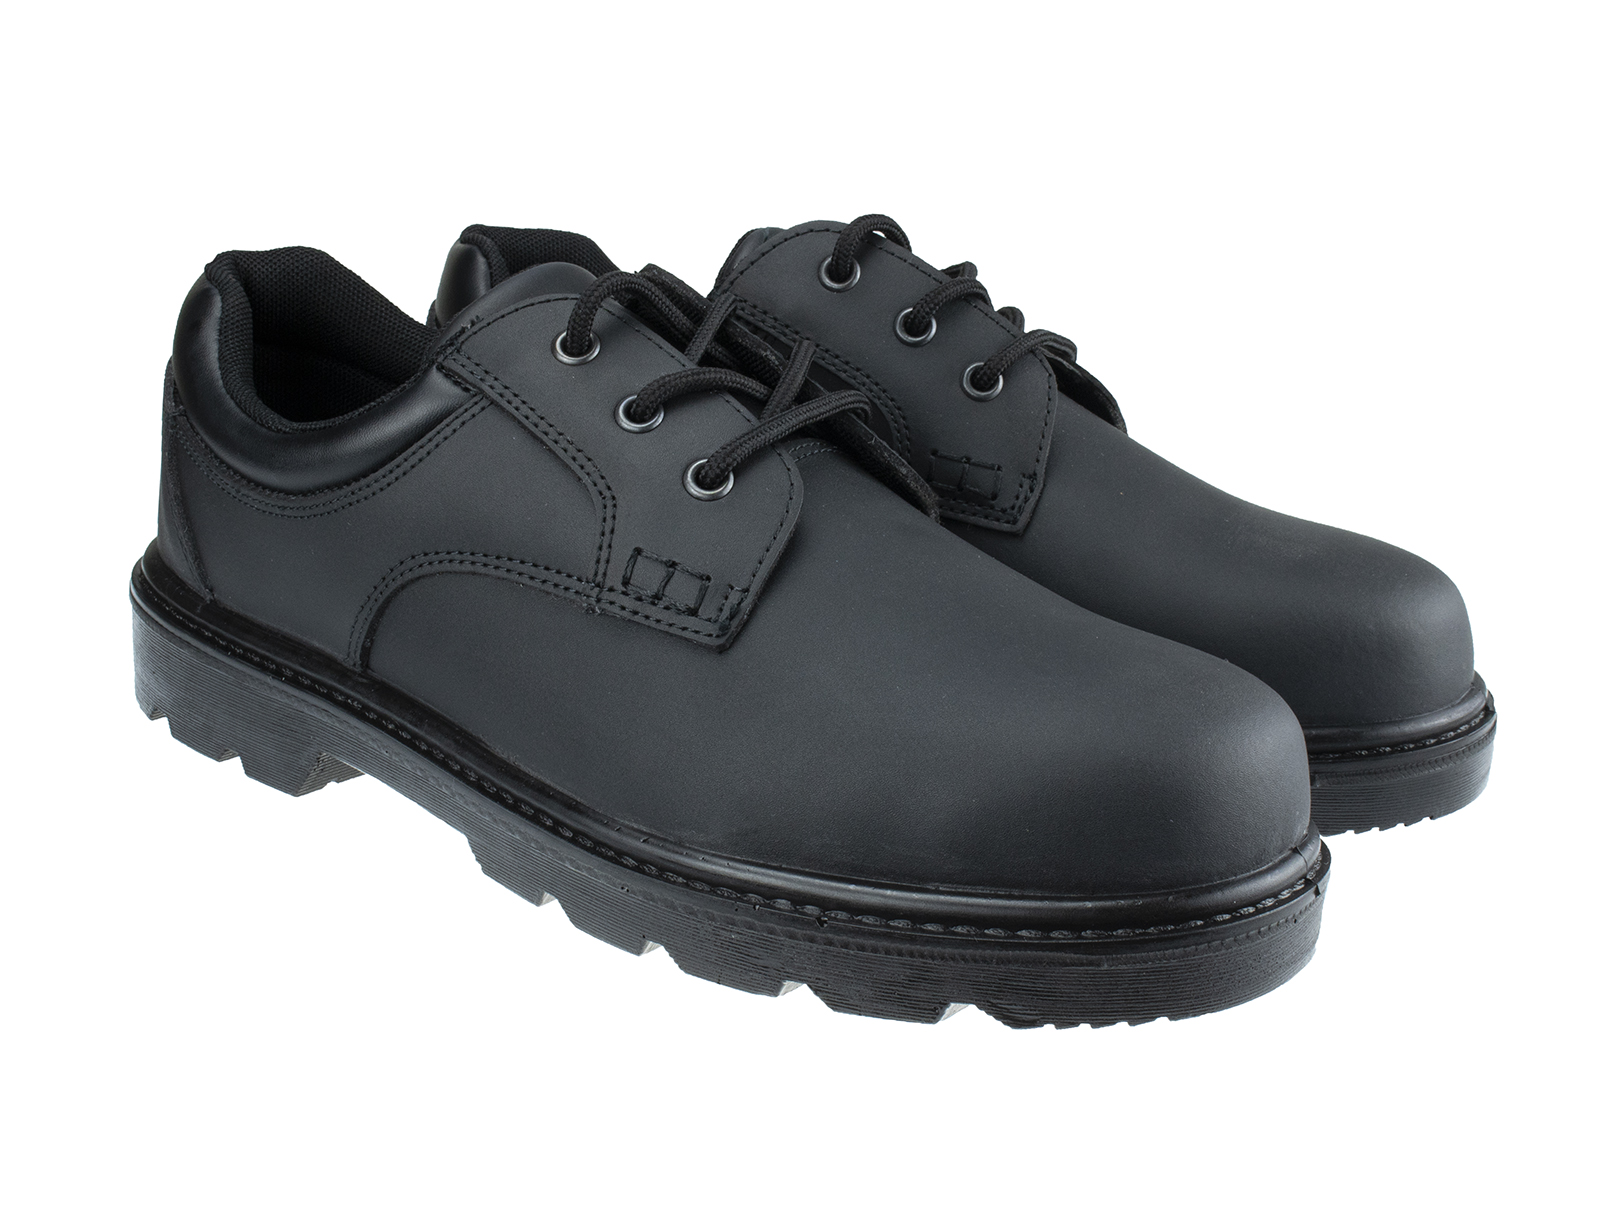 Oxford Executive Leather Safety Shoe w/ Padded collar for Ankle Support  - pair